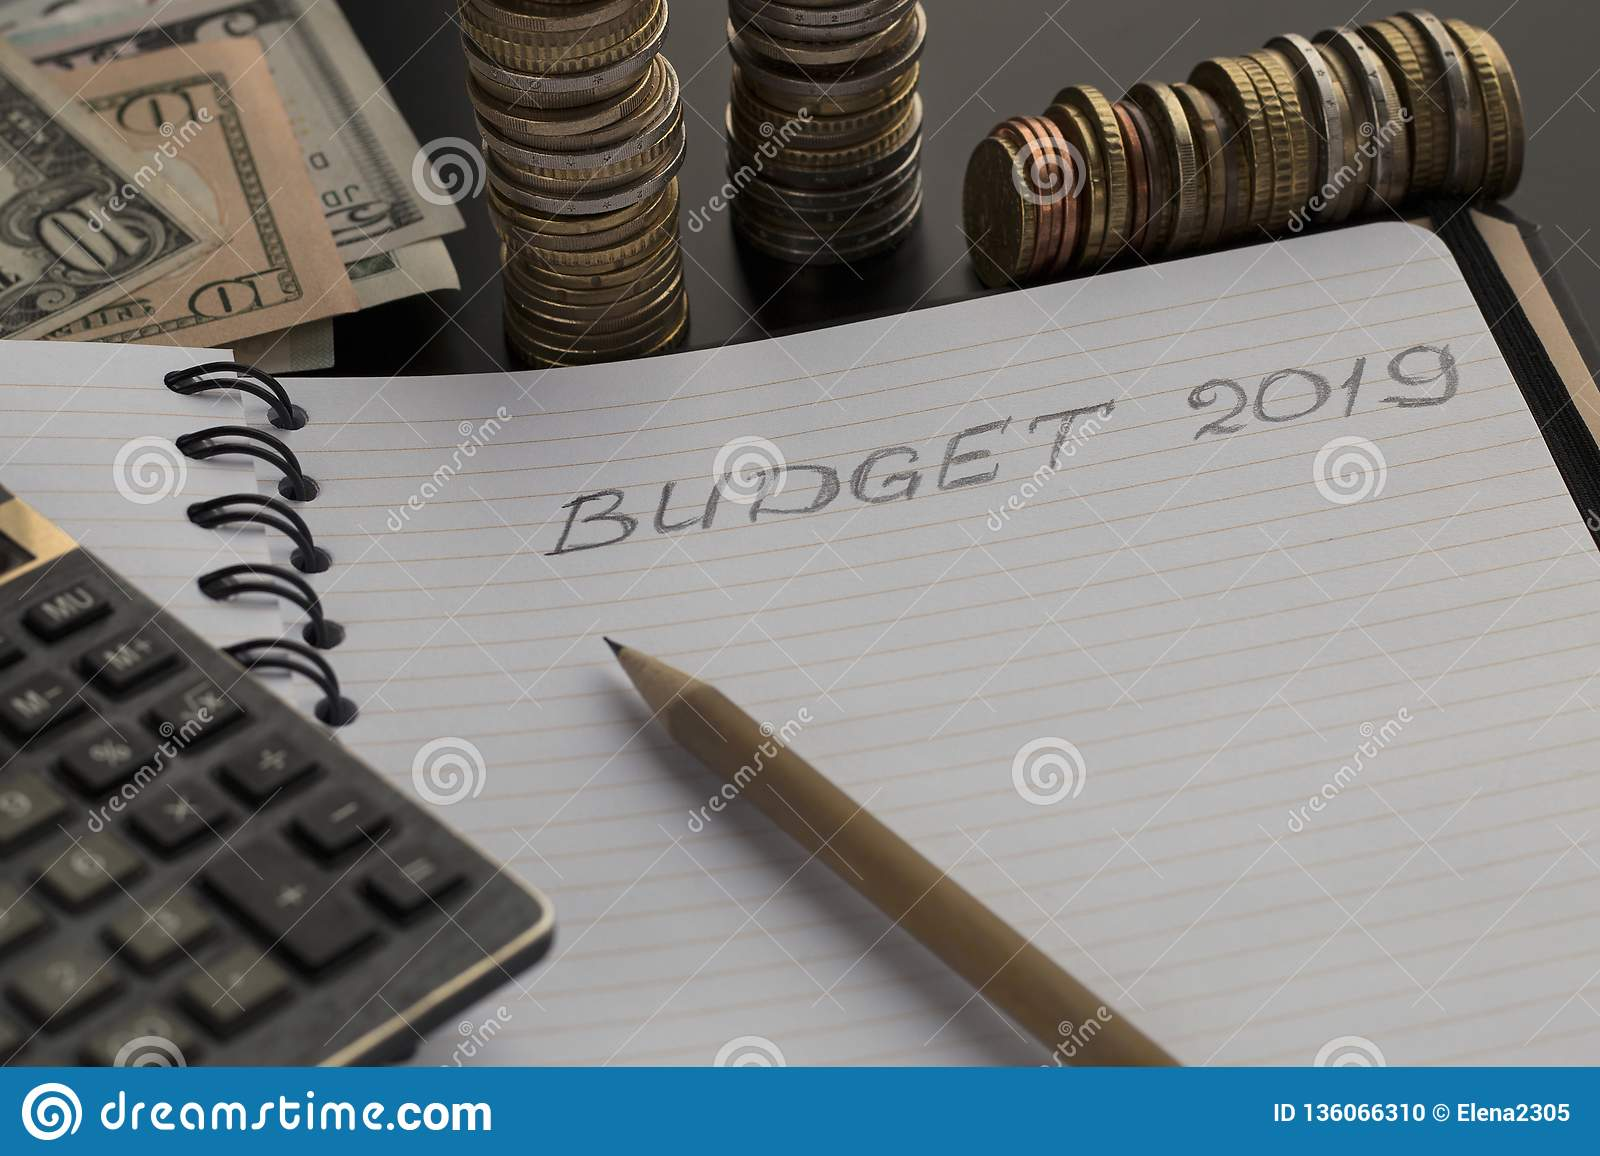 Budget planning concept. Notepad with Budget 2019 text